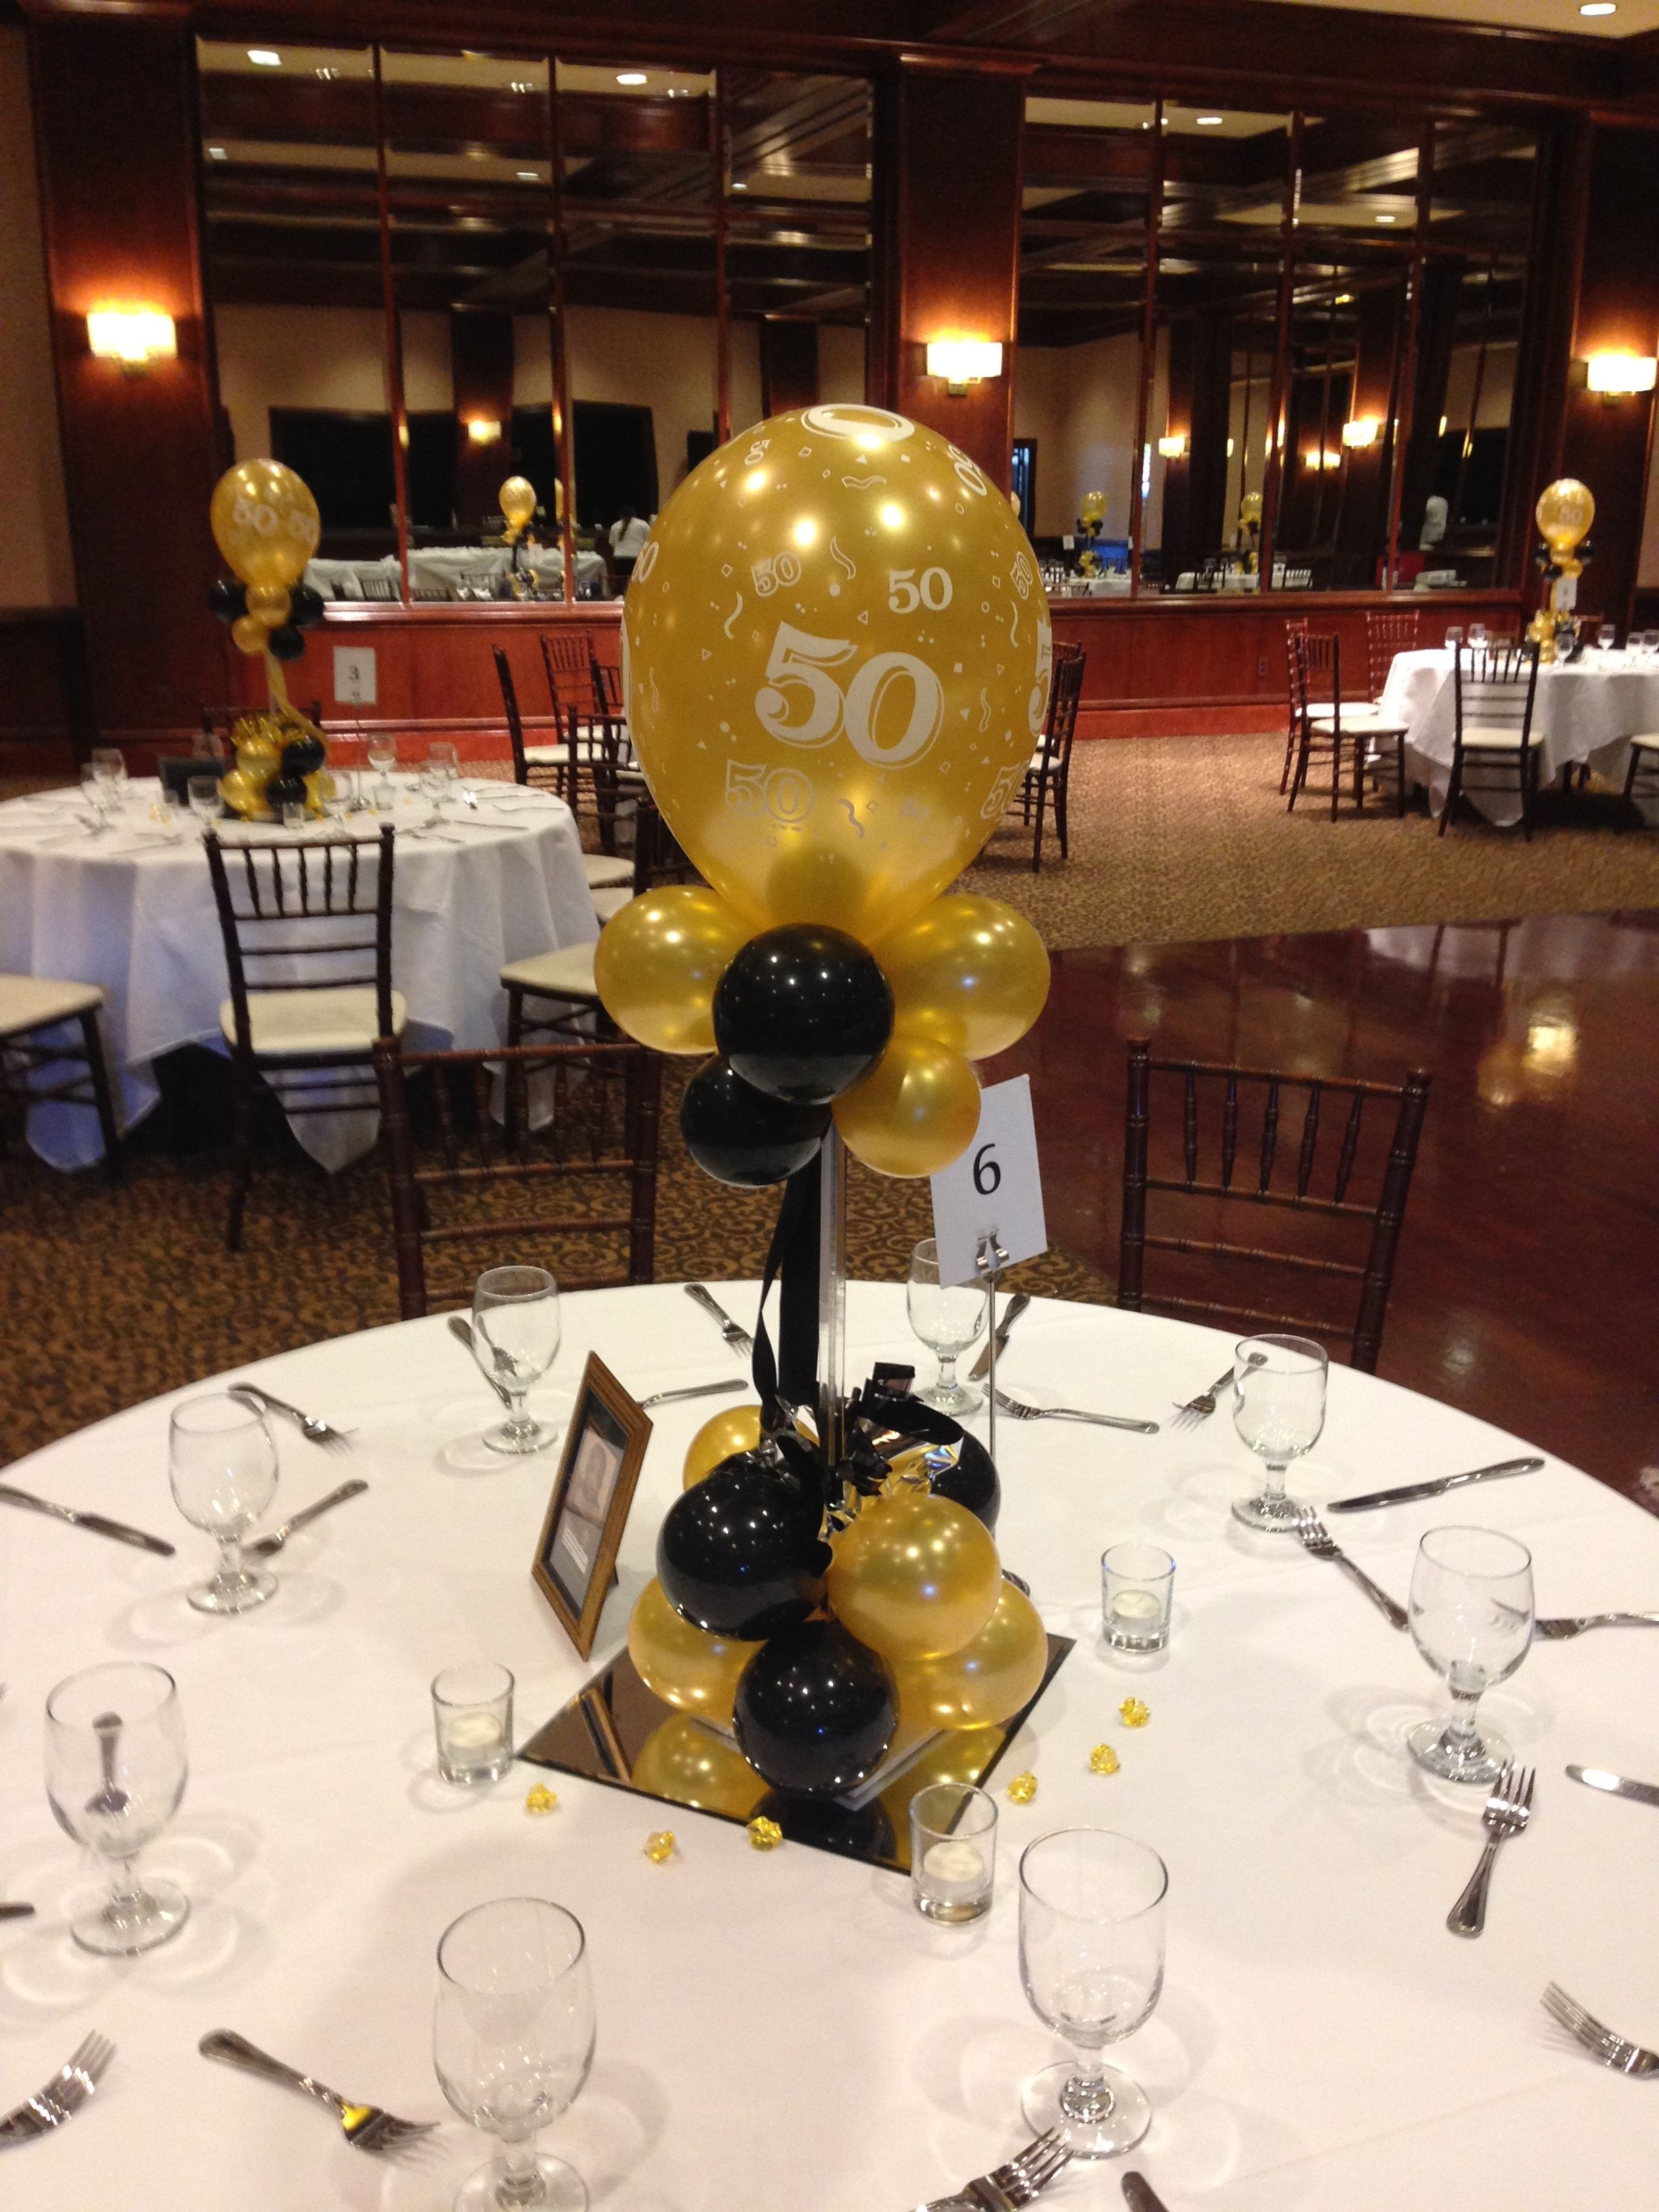 Best ideas about 50th Birthday Table Decorations . Save or Pin Black and gold balloon centerpieces for a 50th birthday or Now.